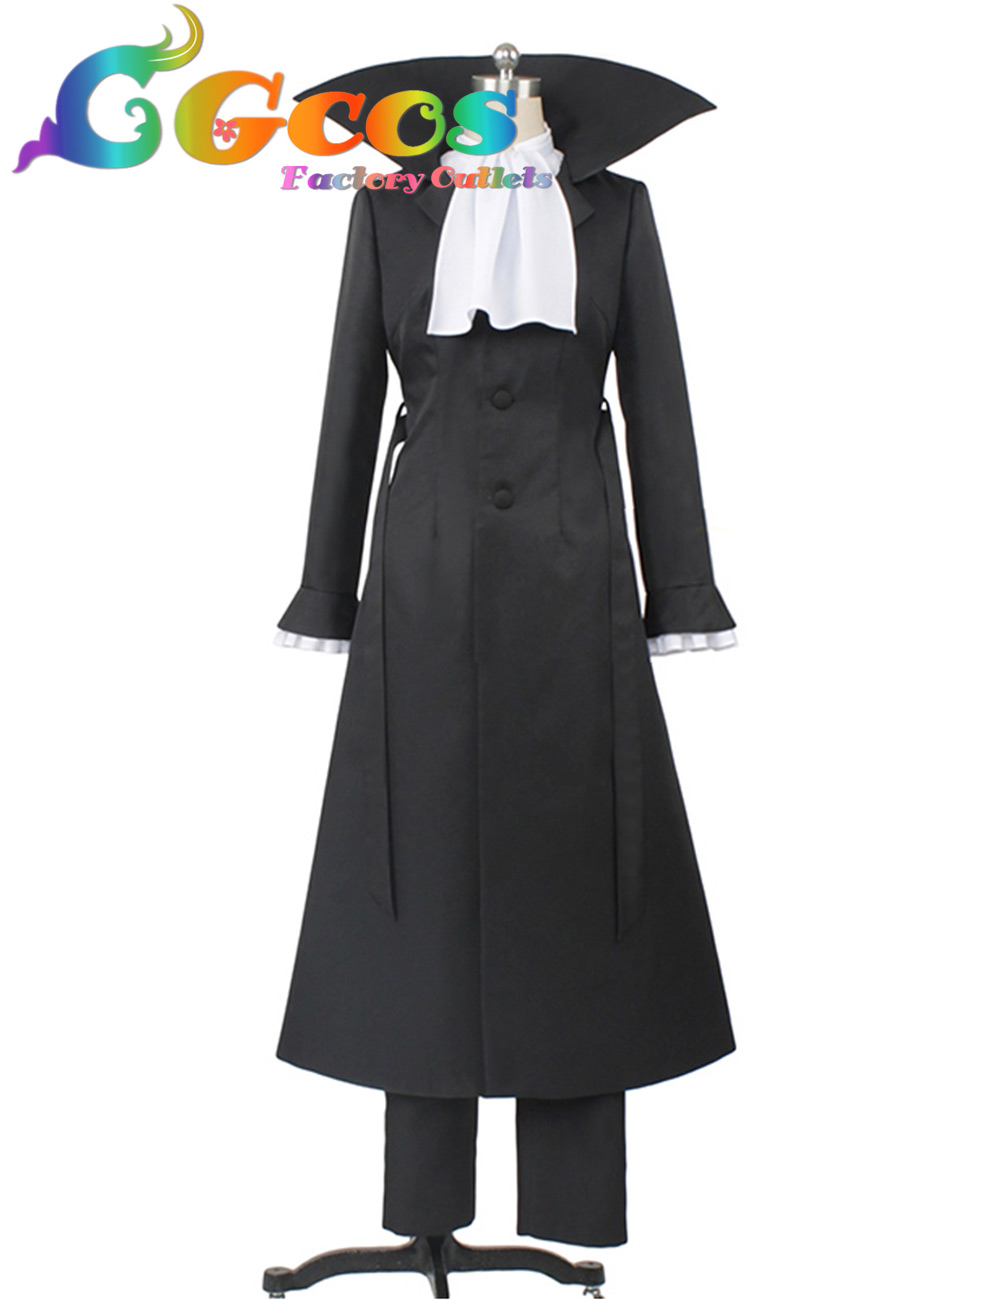 CGCOS Free Shipping Cosplay Costume Bungo Straydogs Ryunosuke Akutagawa Uniform Any Size New in Stock Halloween Christmas Party